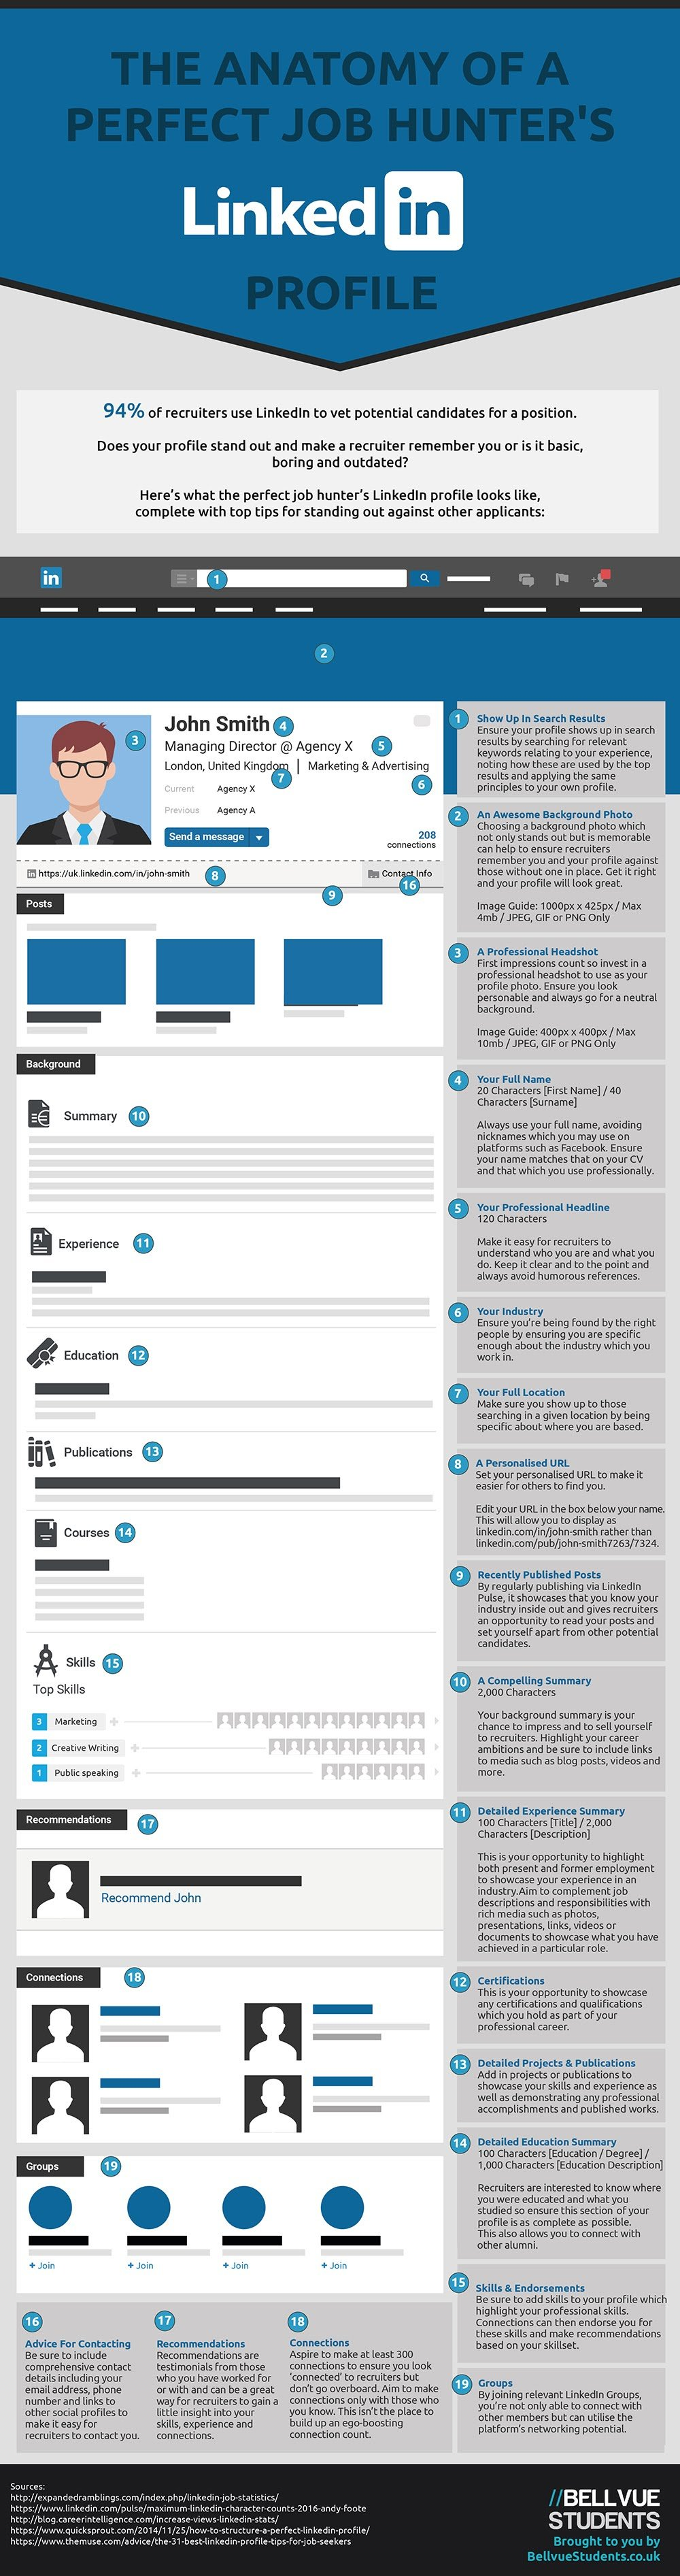 The Anatomy of a Perfect Job Hunters' LinkedIn Profile [Infographic] | Social Media Today